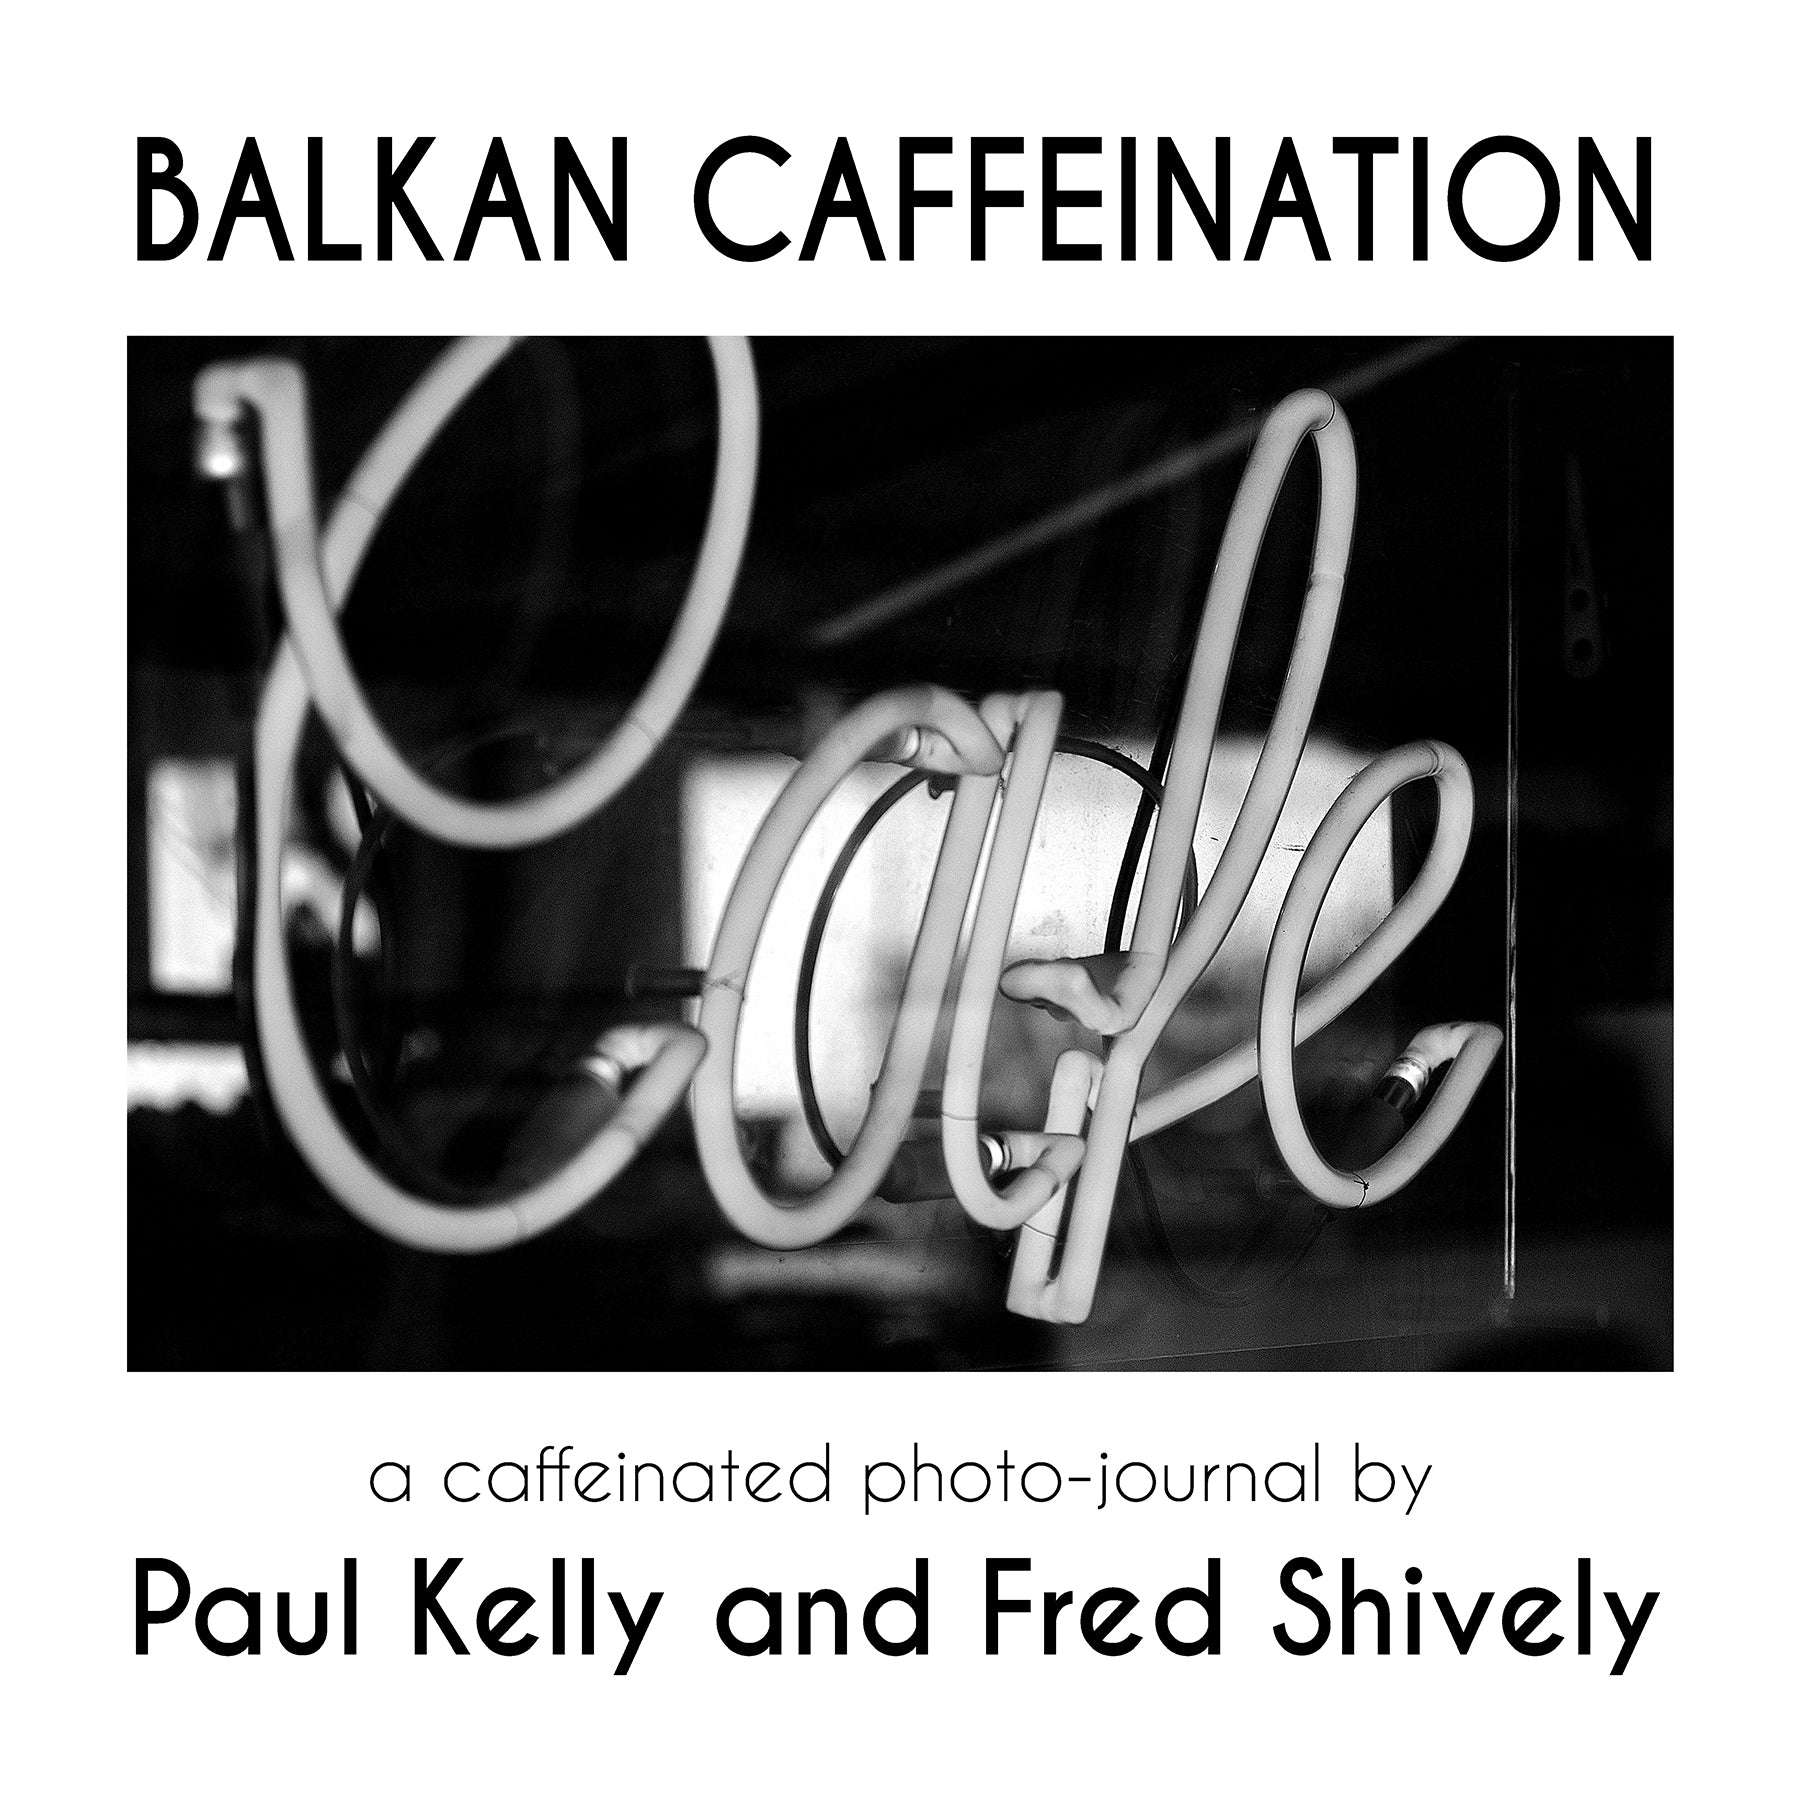 Balkan Caffeination, Paul Kelly & Fred Shively - The Library Project